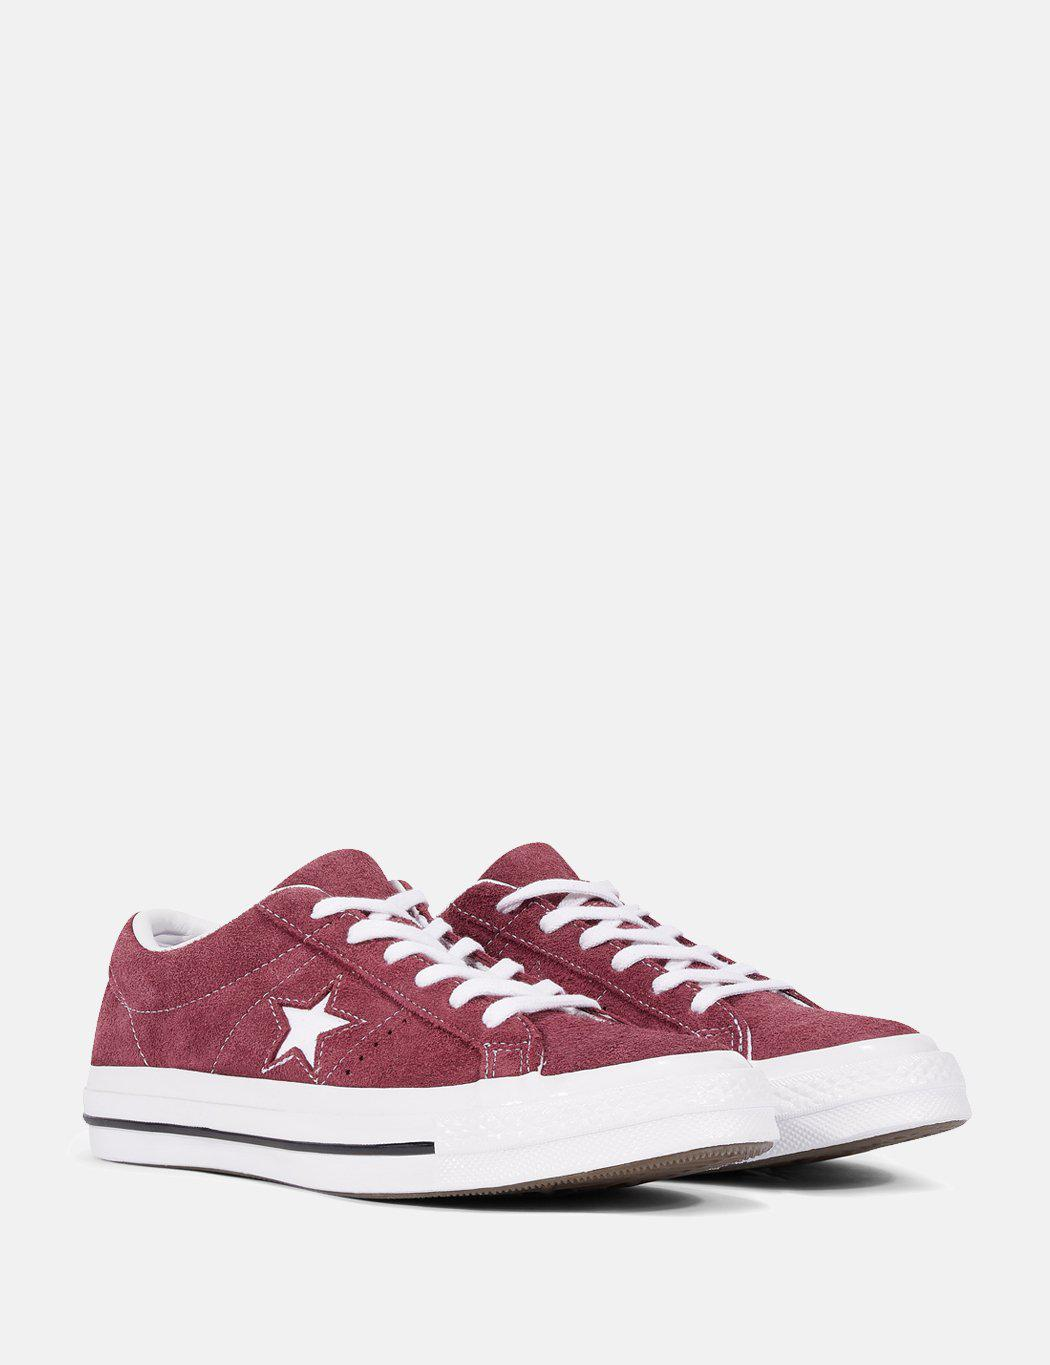 f0c82181559b Lyst - Converse Unisex Adults  Lifestyle One Star Ox Suede Fitness Shoes in  Red for Men - Save 65%